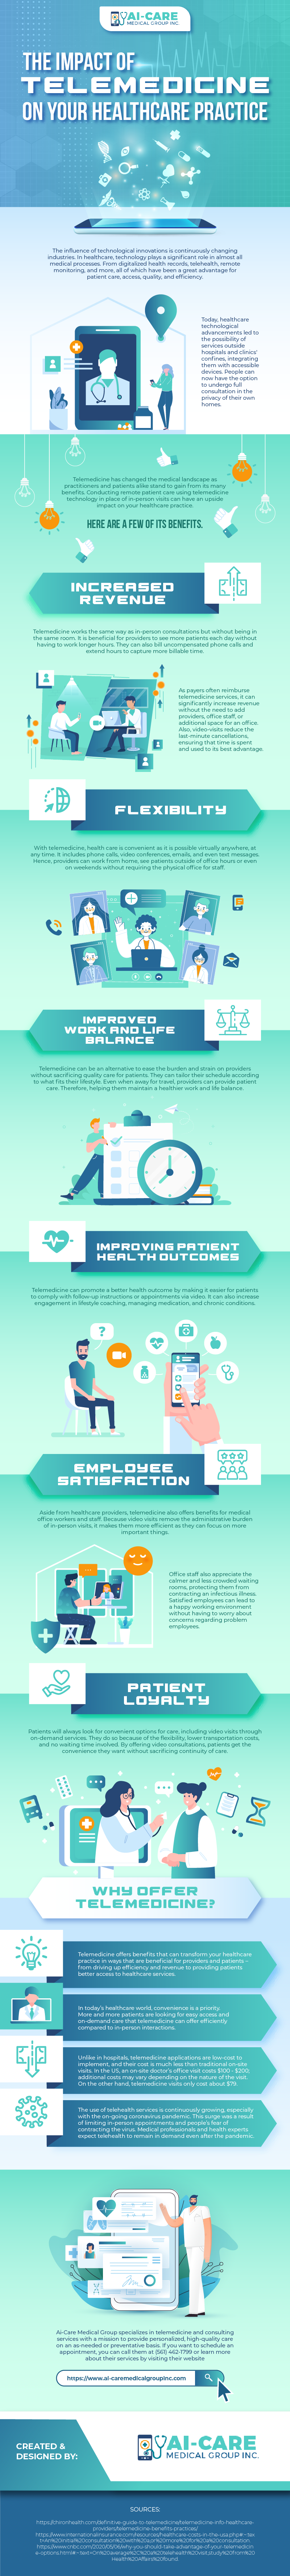 The Impact of Telemedicine on Your Healthcare Practice